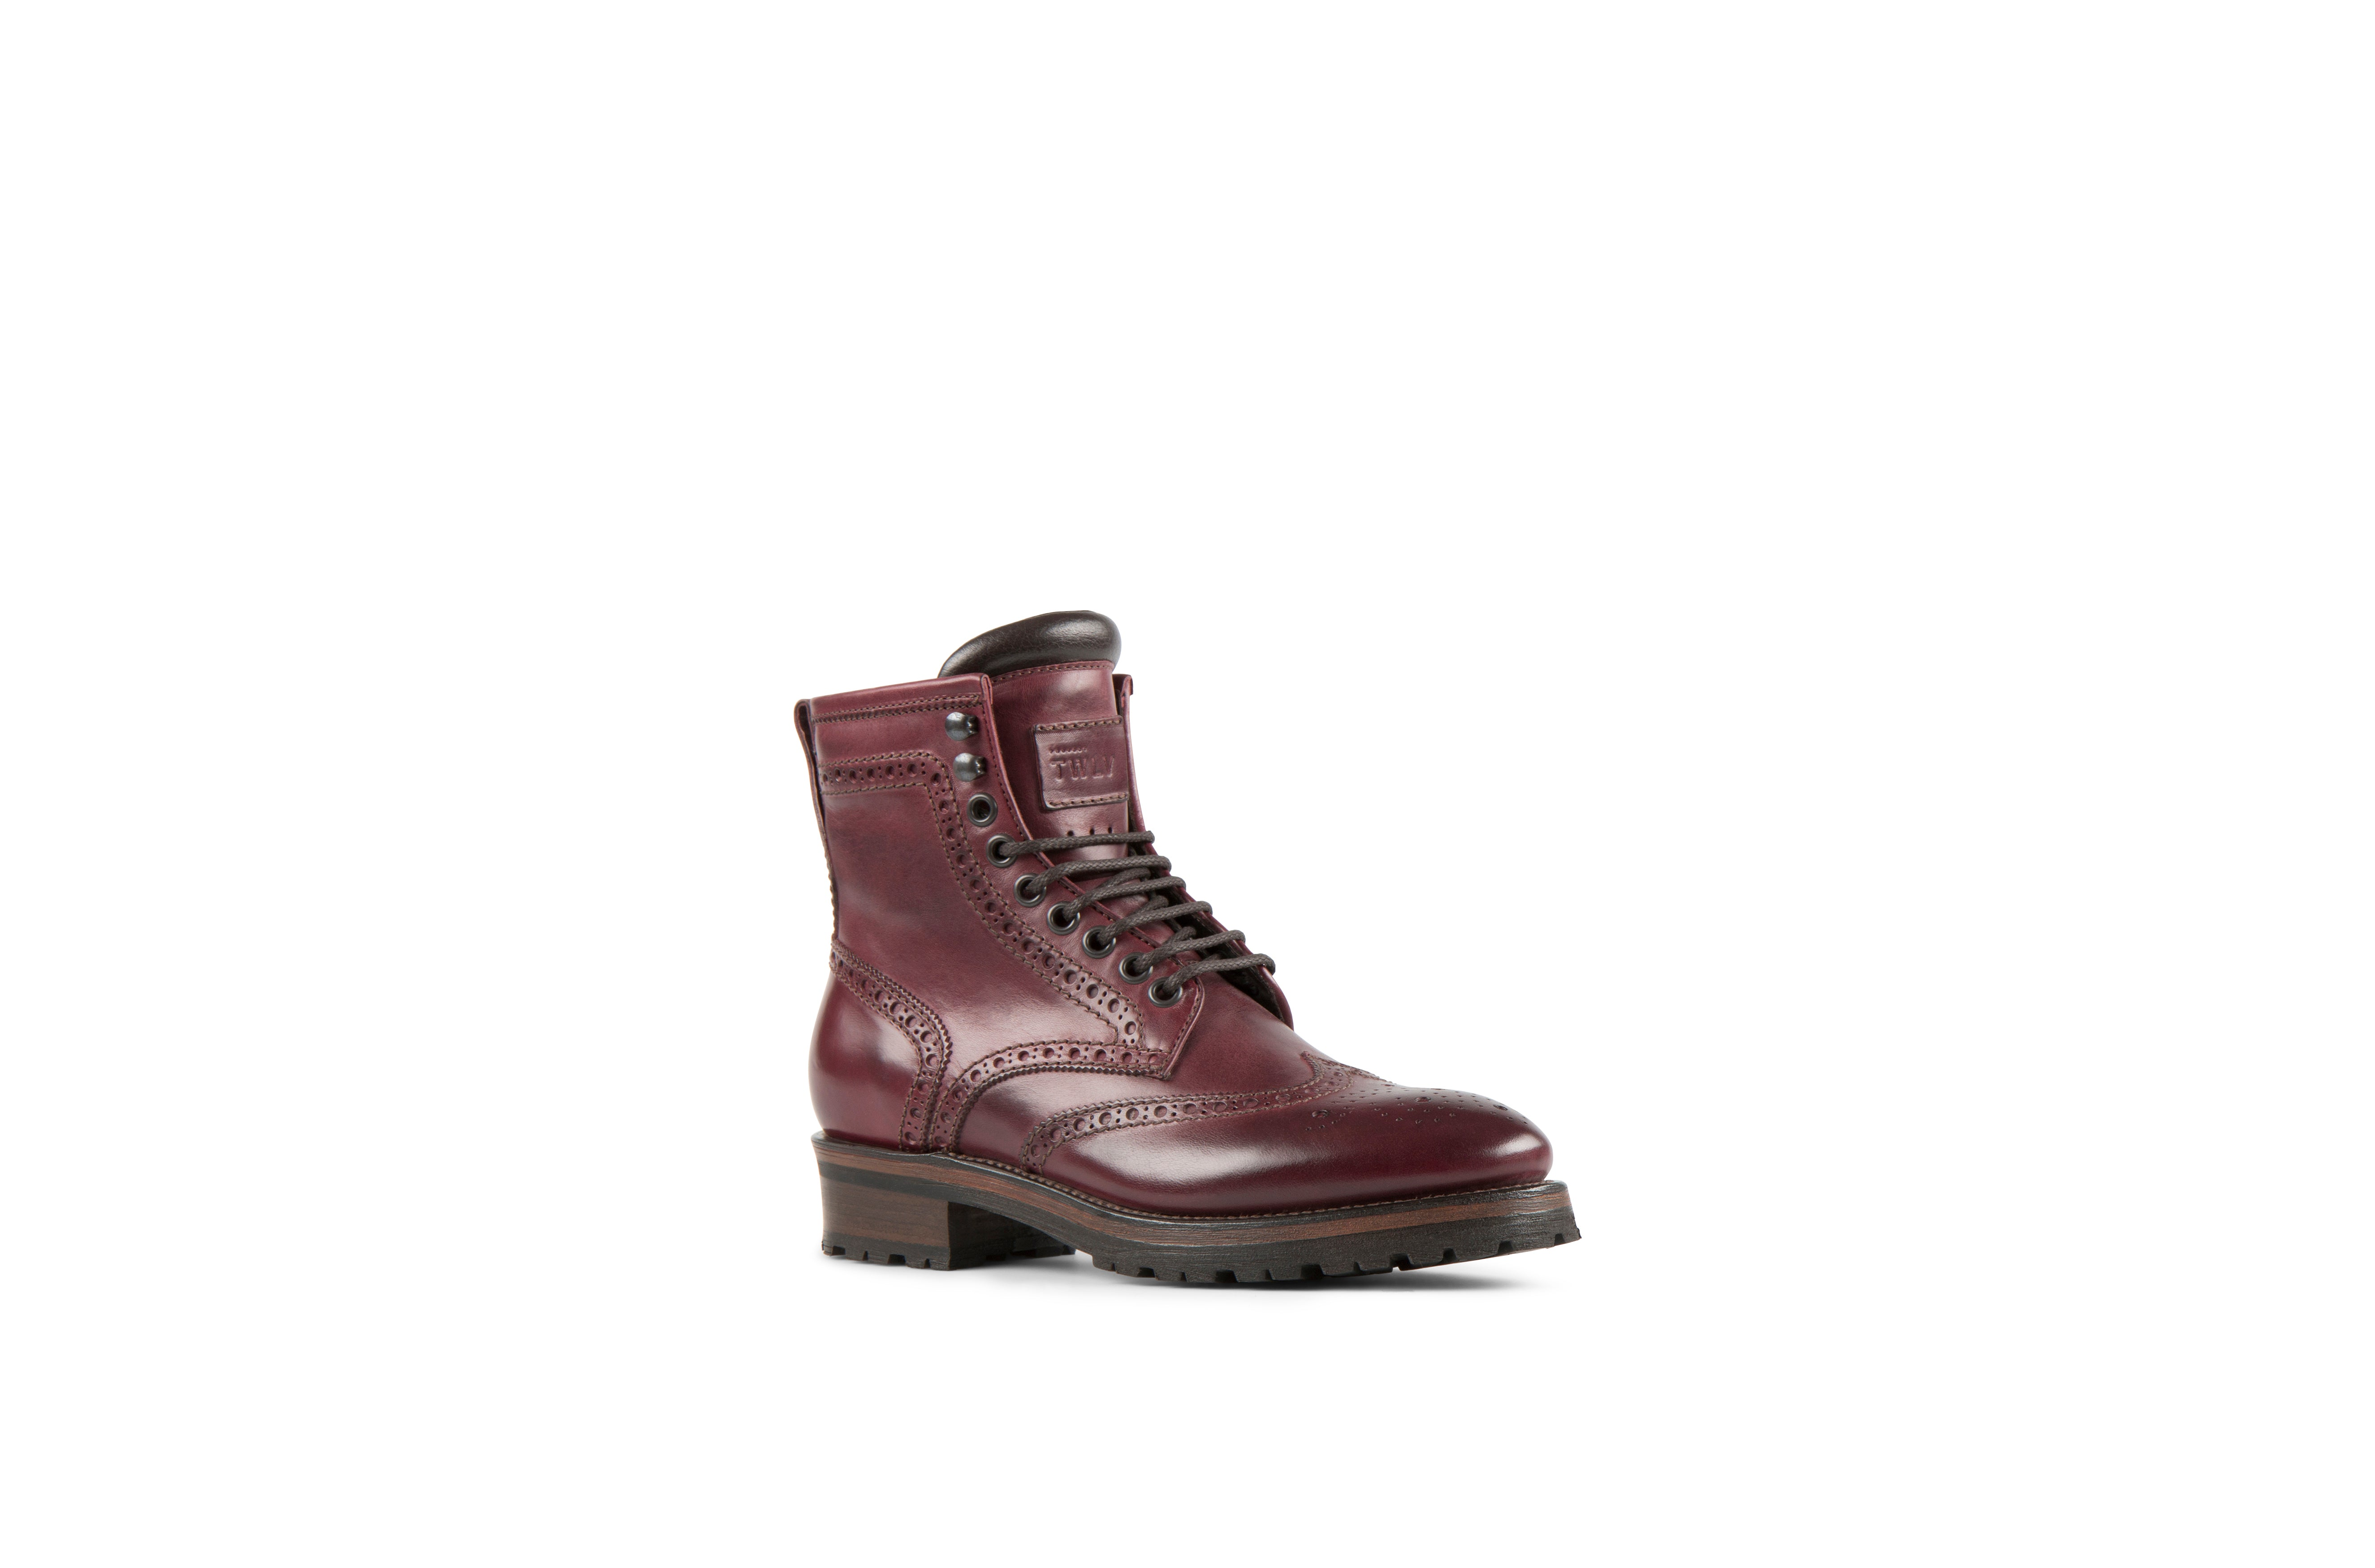 Baltimore Burgundy Cordovan Leather Logger Boots